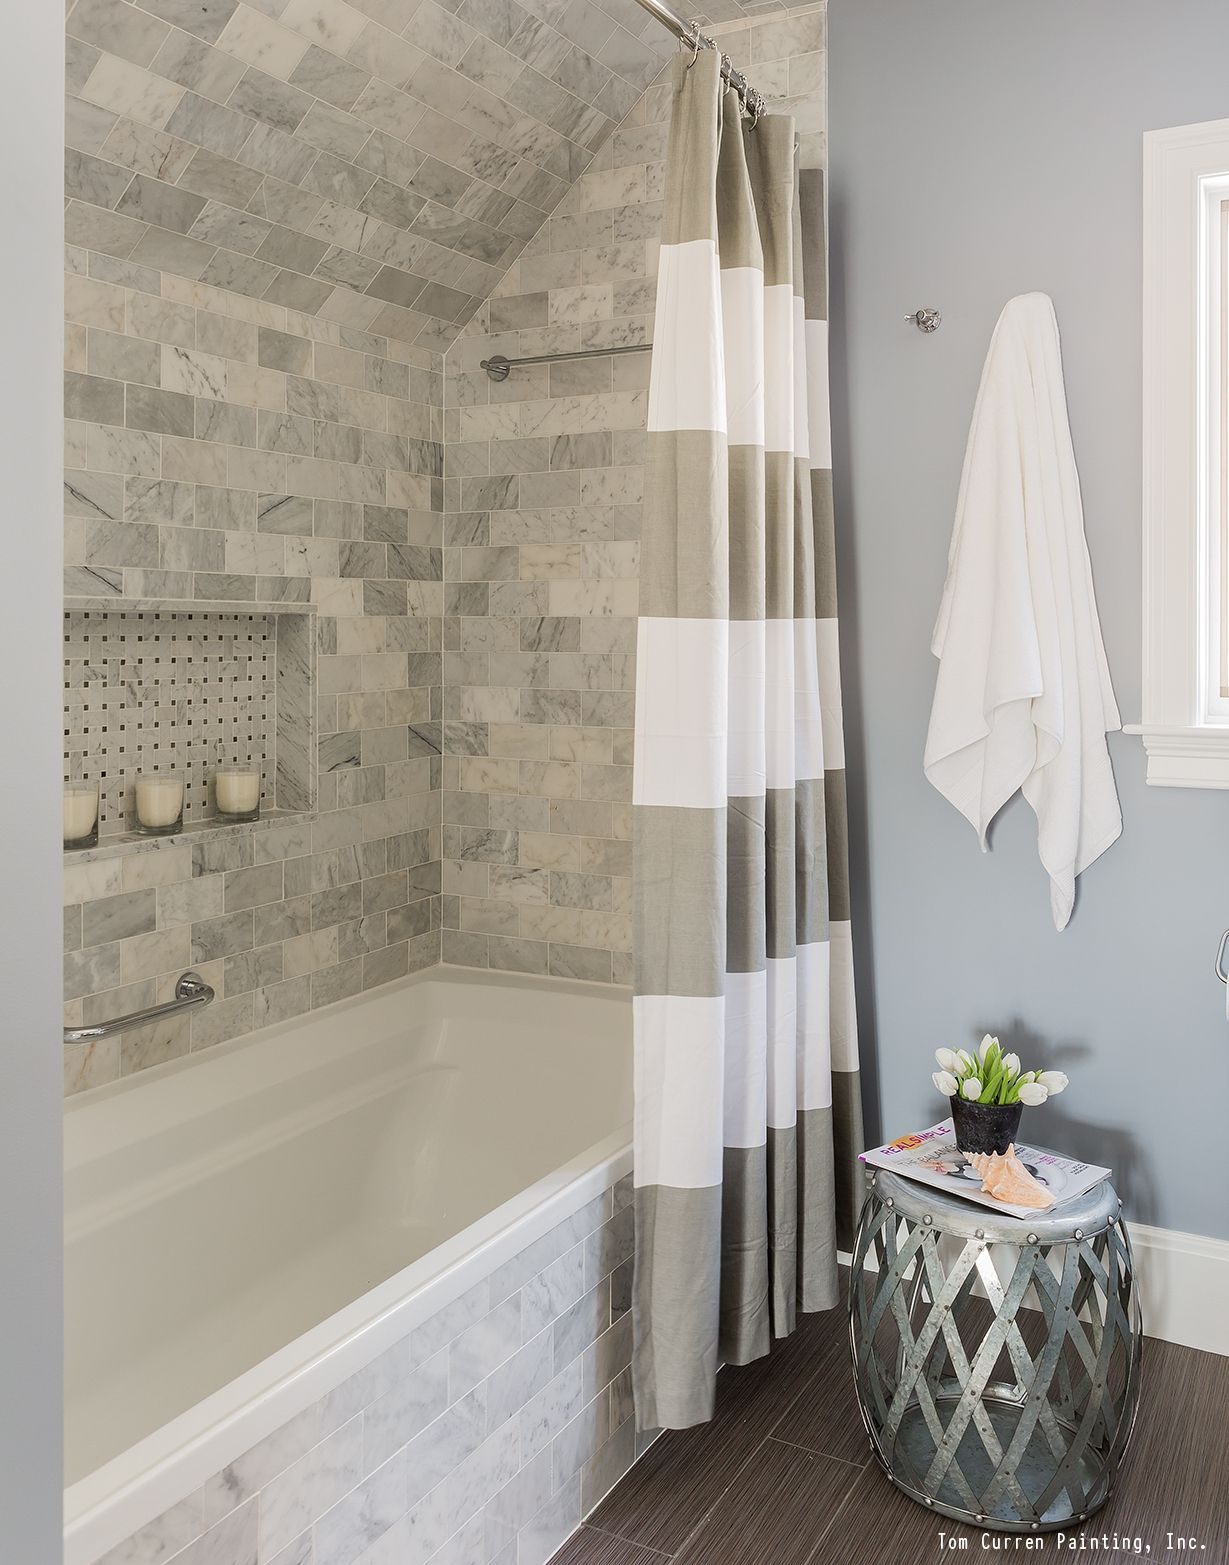 Bathroom Makeover Paint Tiles a gorgeous bathroom remodel with a tile shower, white trim and a